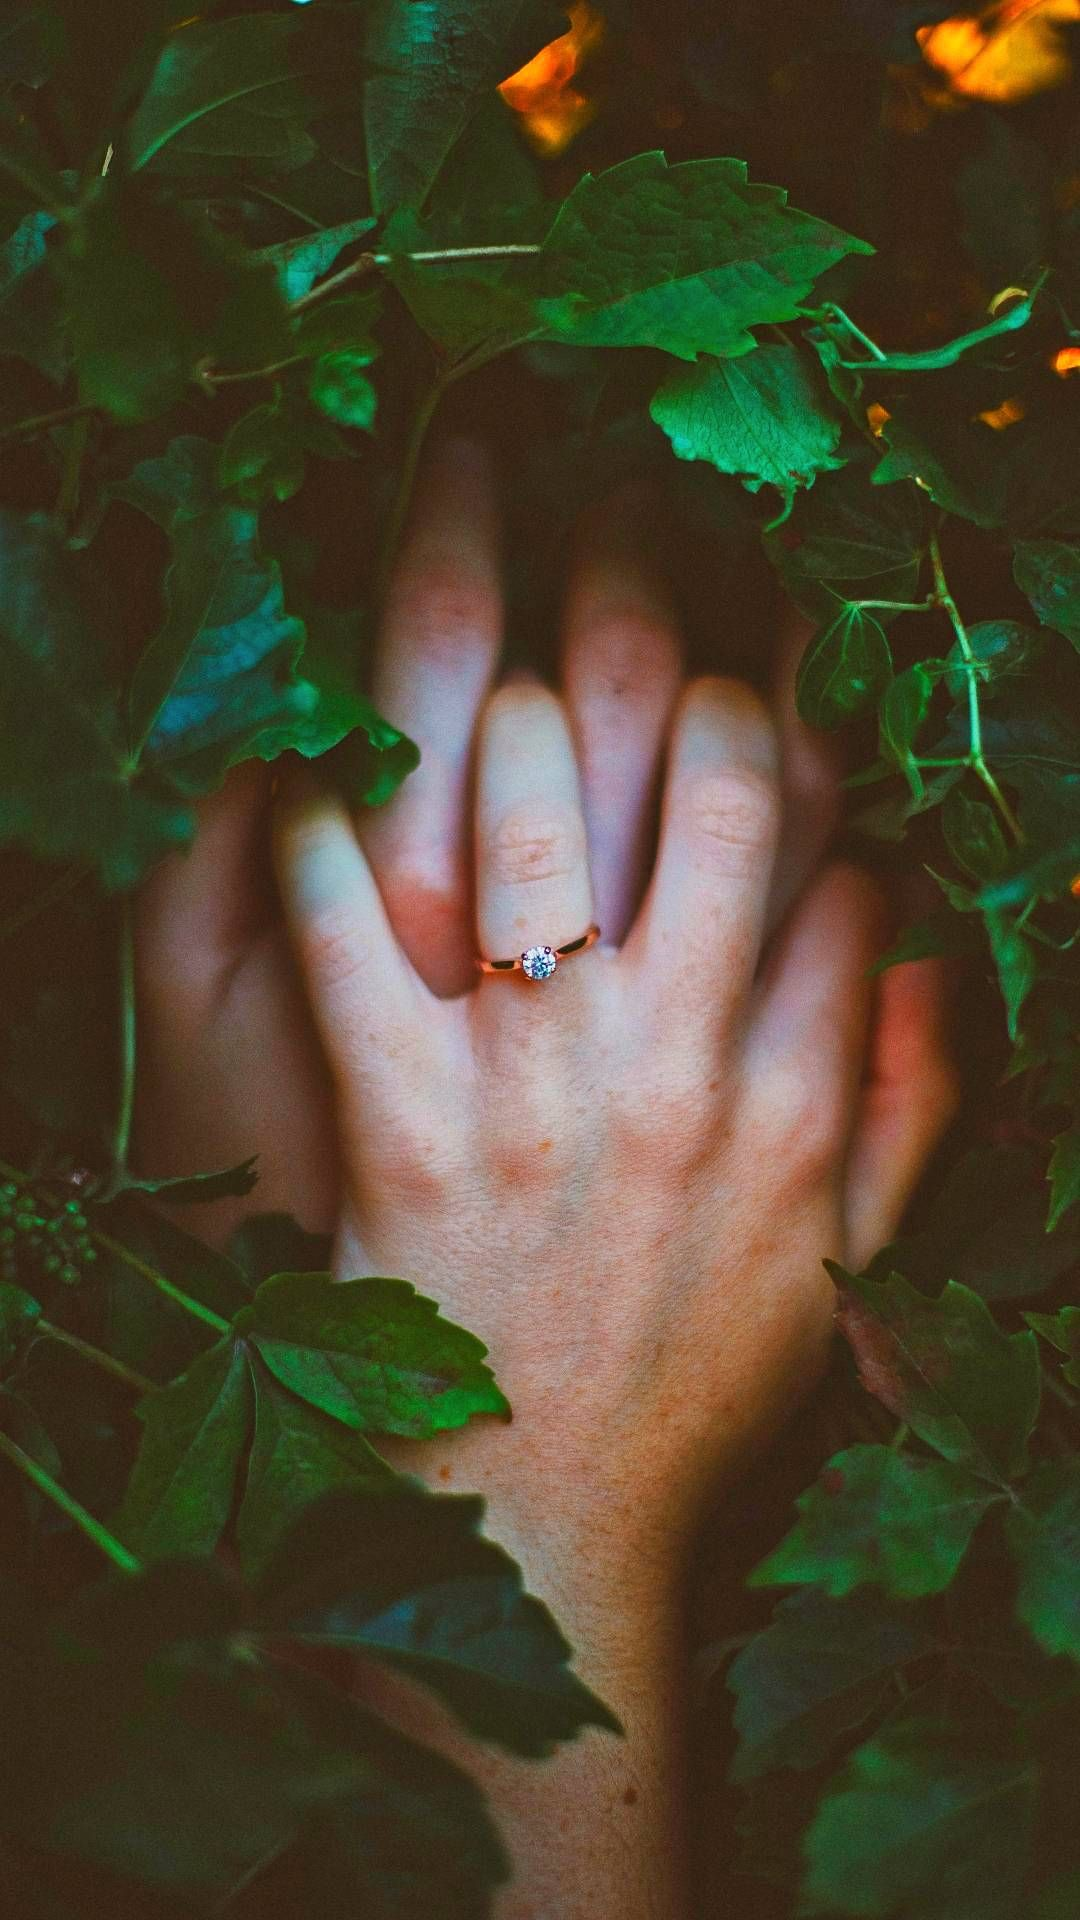 Relationship Couple Holding Hand Together Romantic Original Wallpapers